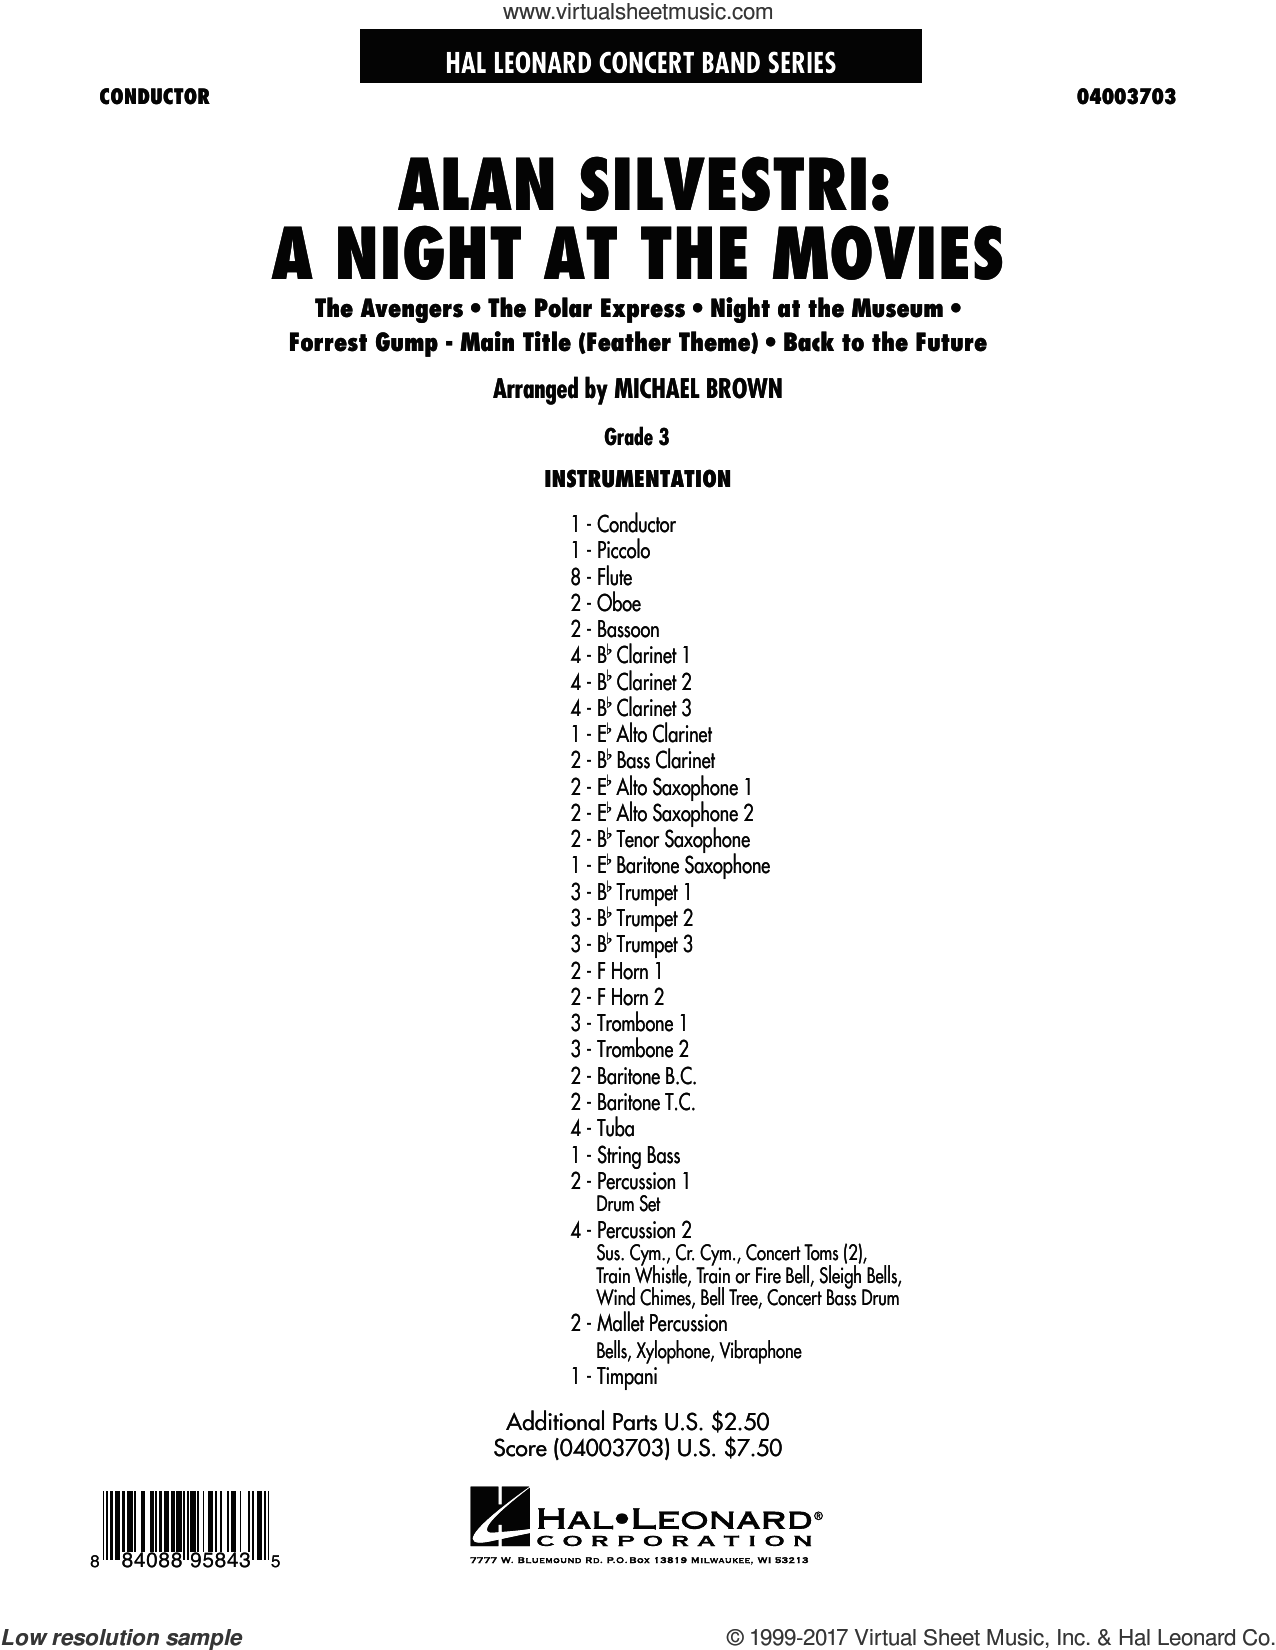 Alan Silvestri: A Night at the Movies (COMPLETE) sheet music for concert band by Alan Silvestri and Michael Brown, intermediate skill level